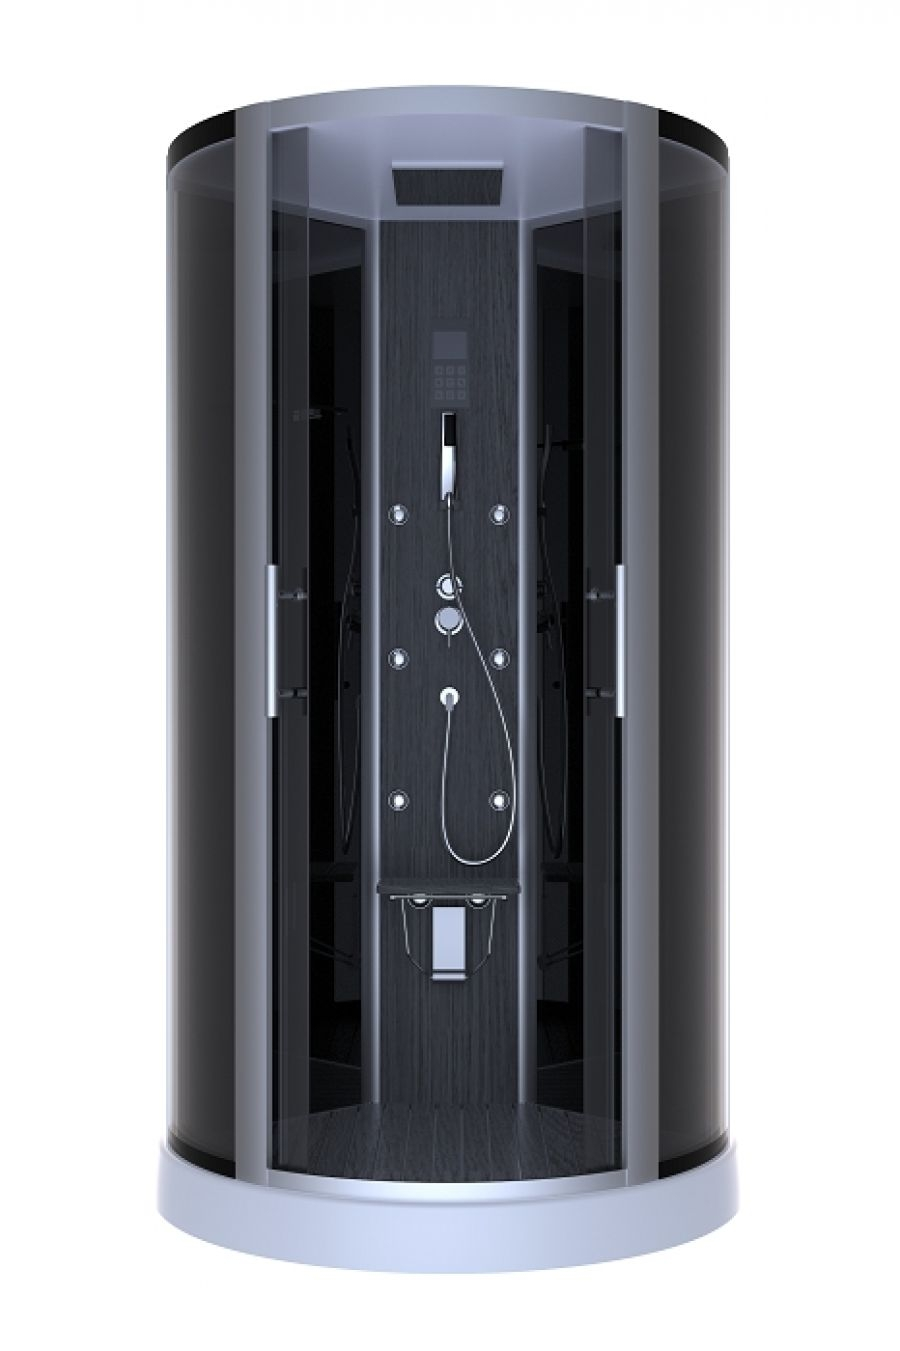 cabine de douche 1 4 rond dark night hammam 95cm meuble de salle de bain. Black Bedroom Furniture Sets. Home Design Ideas